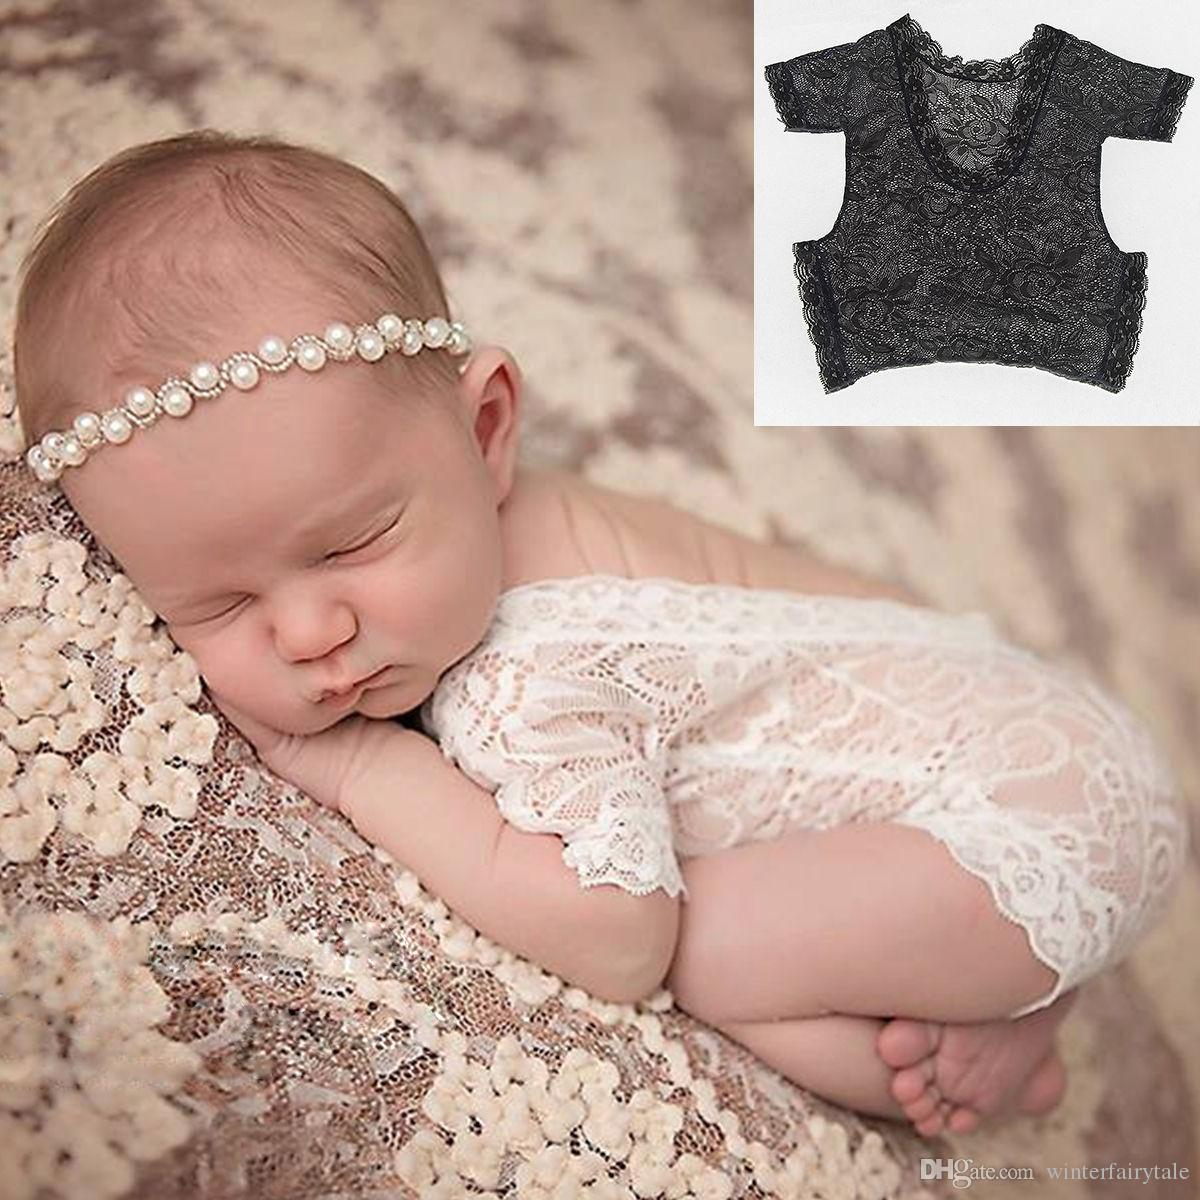 2018 newborn baby photography lace jumpsuit baby girl cute petti jumpsuit baby toddler photo clothing soft lace tights 0 3 m from winterfairytale